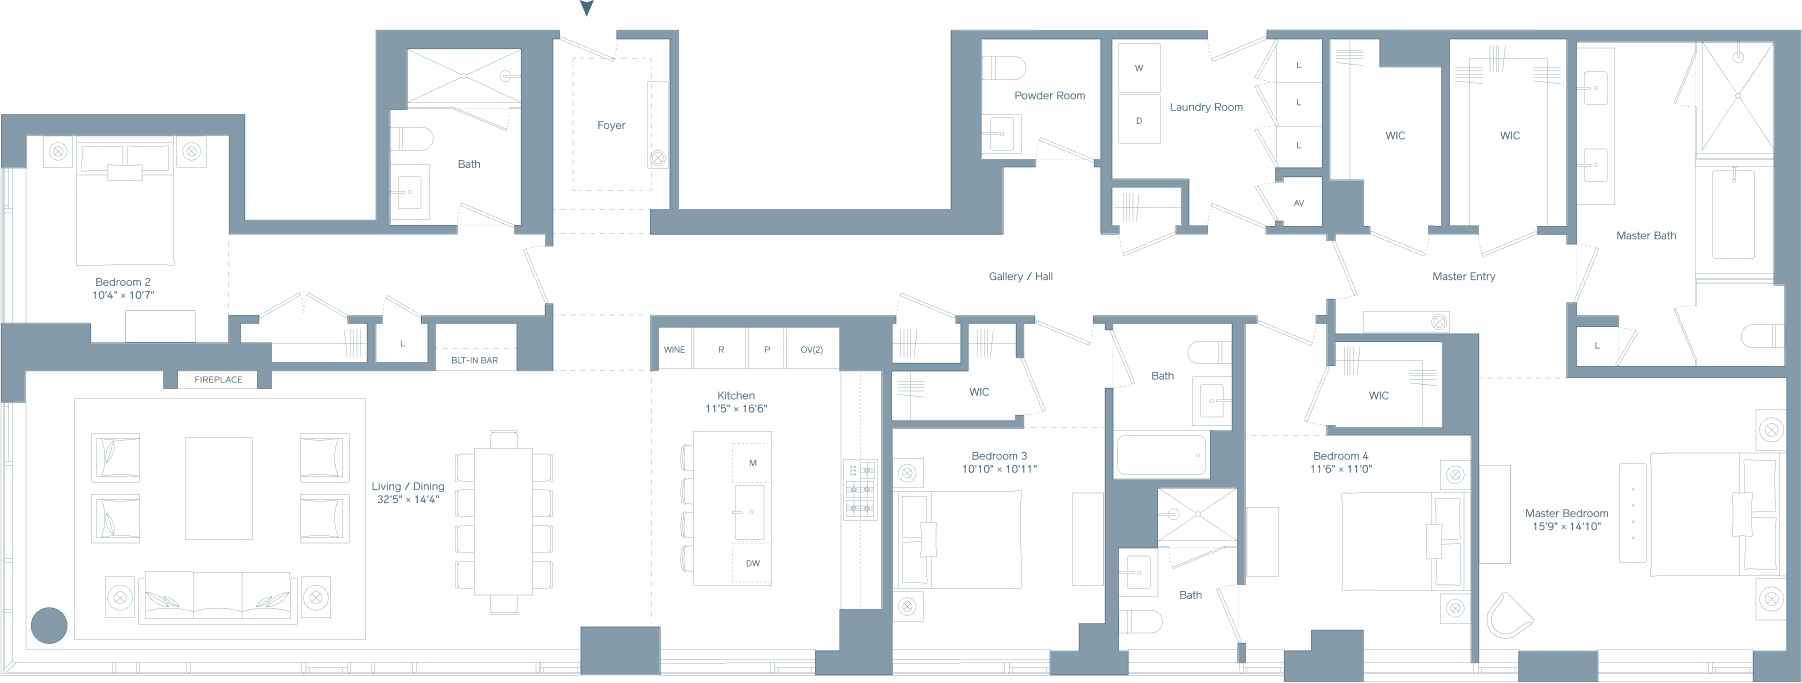 Four bedroom PH floorplan